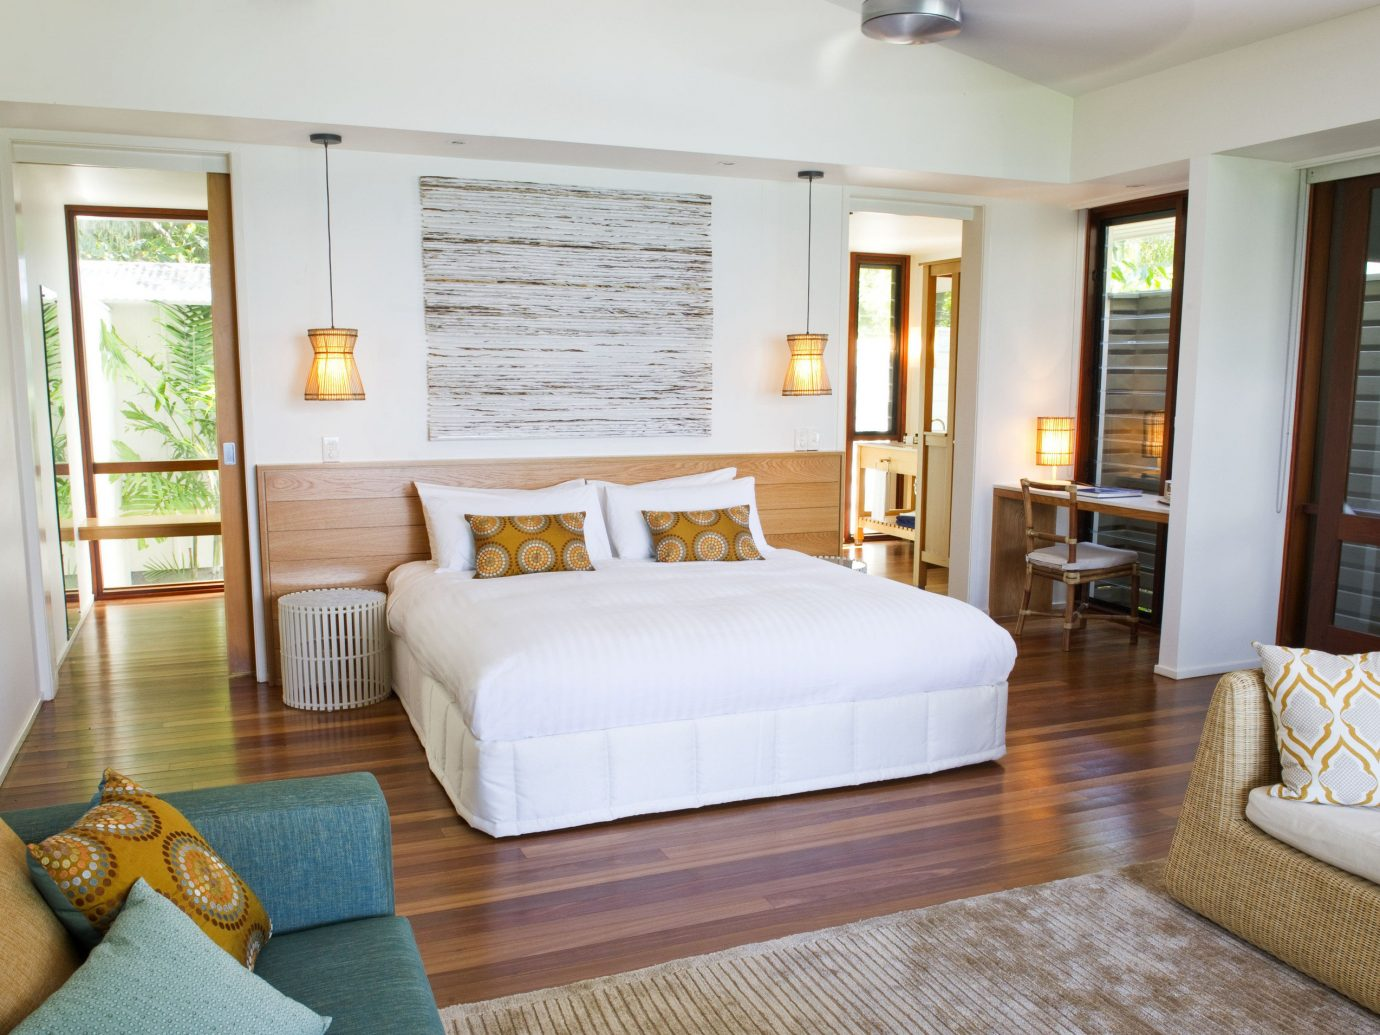 All-Inclusive Resorts Beach Hotels Trip Ideas indoor room floor sofa wall ceiling window property bed Bedroom hotel estate Suite real estate home condominium cottage interior design living room nice apartment furniture area flat decorated